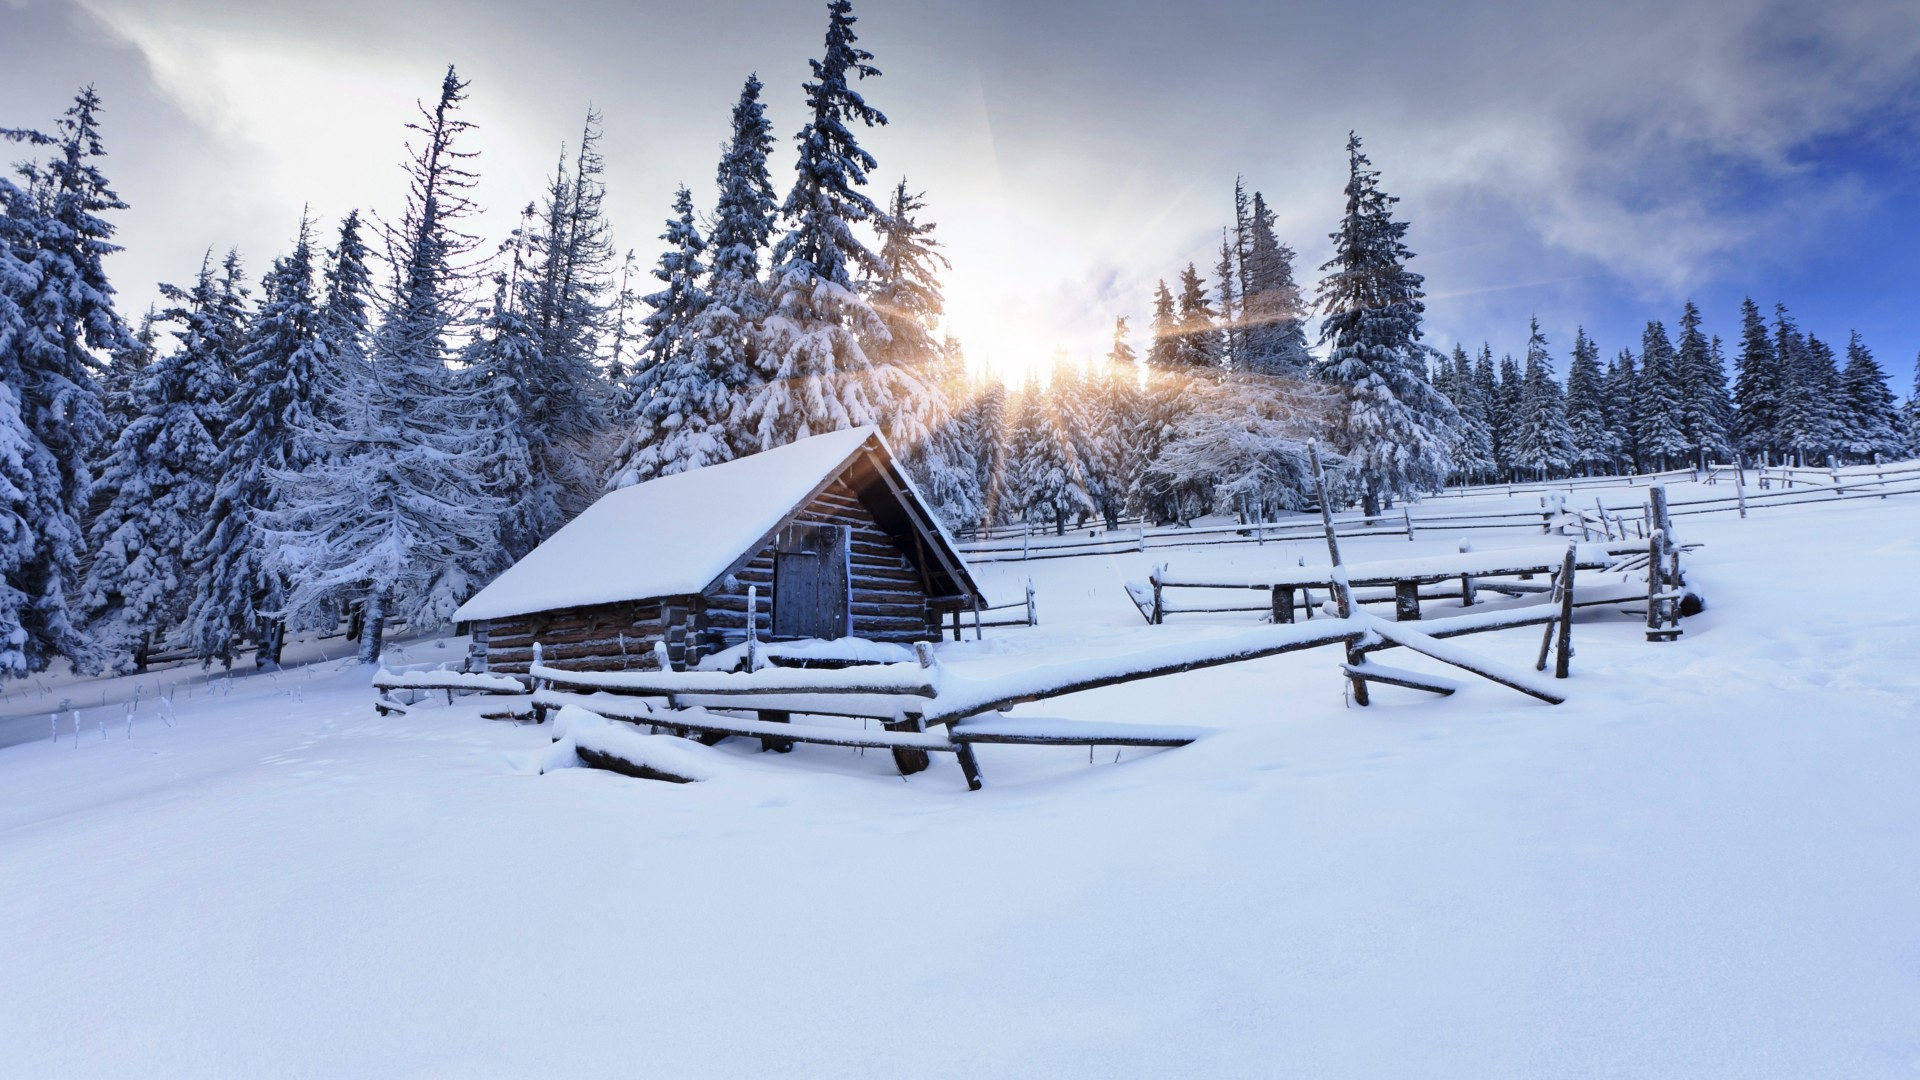 winter forest, mountain, sun, snow, fir-trees, village, house,